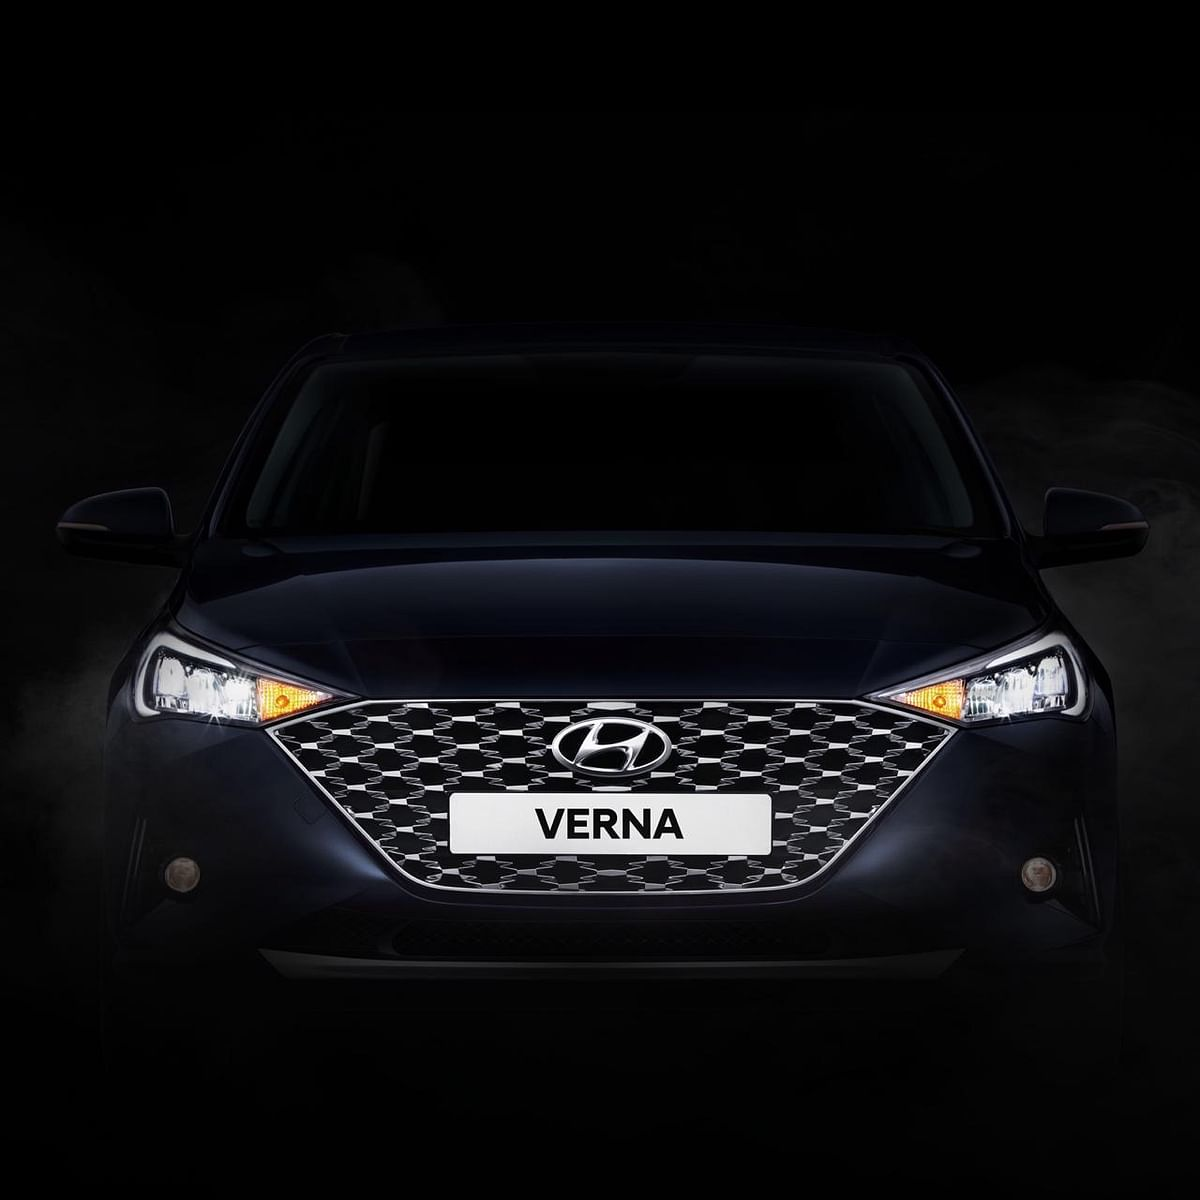 The 2020 Hyundai Verna will get full LED headlamps and a new grille.